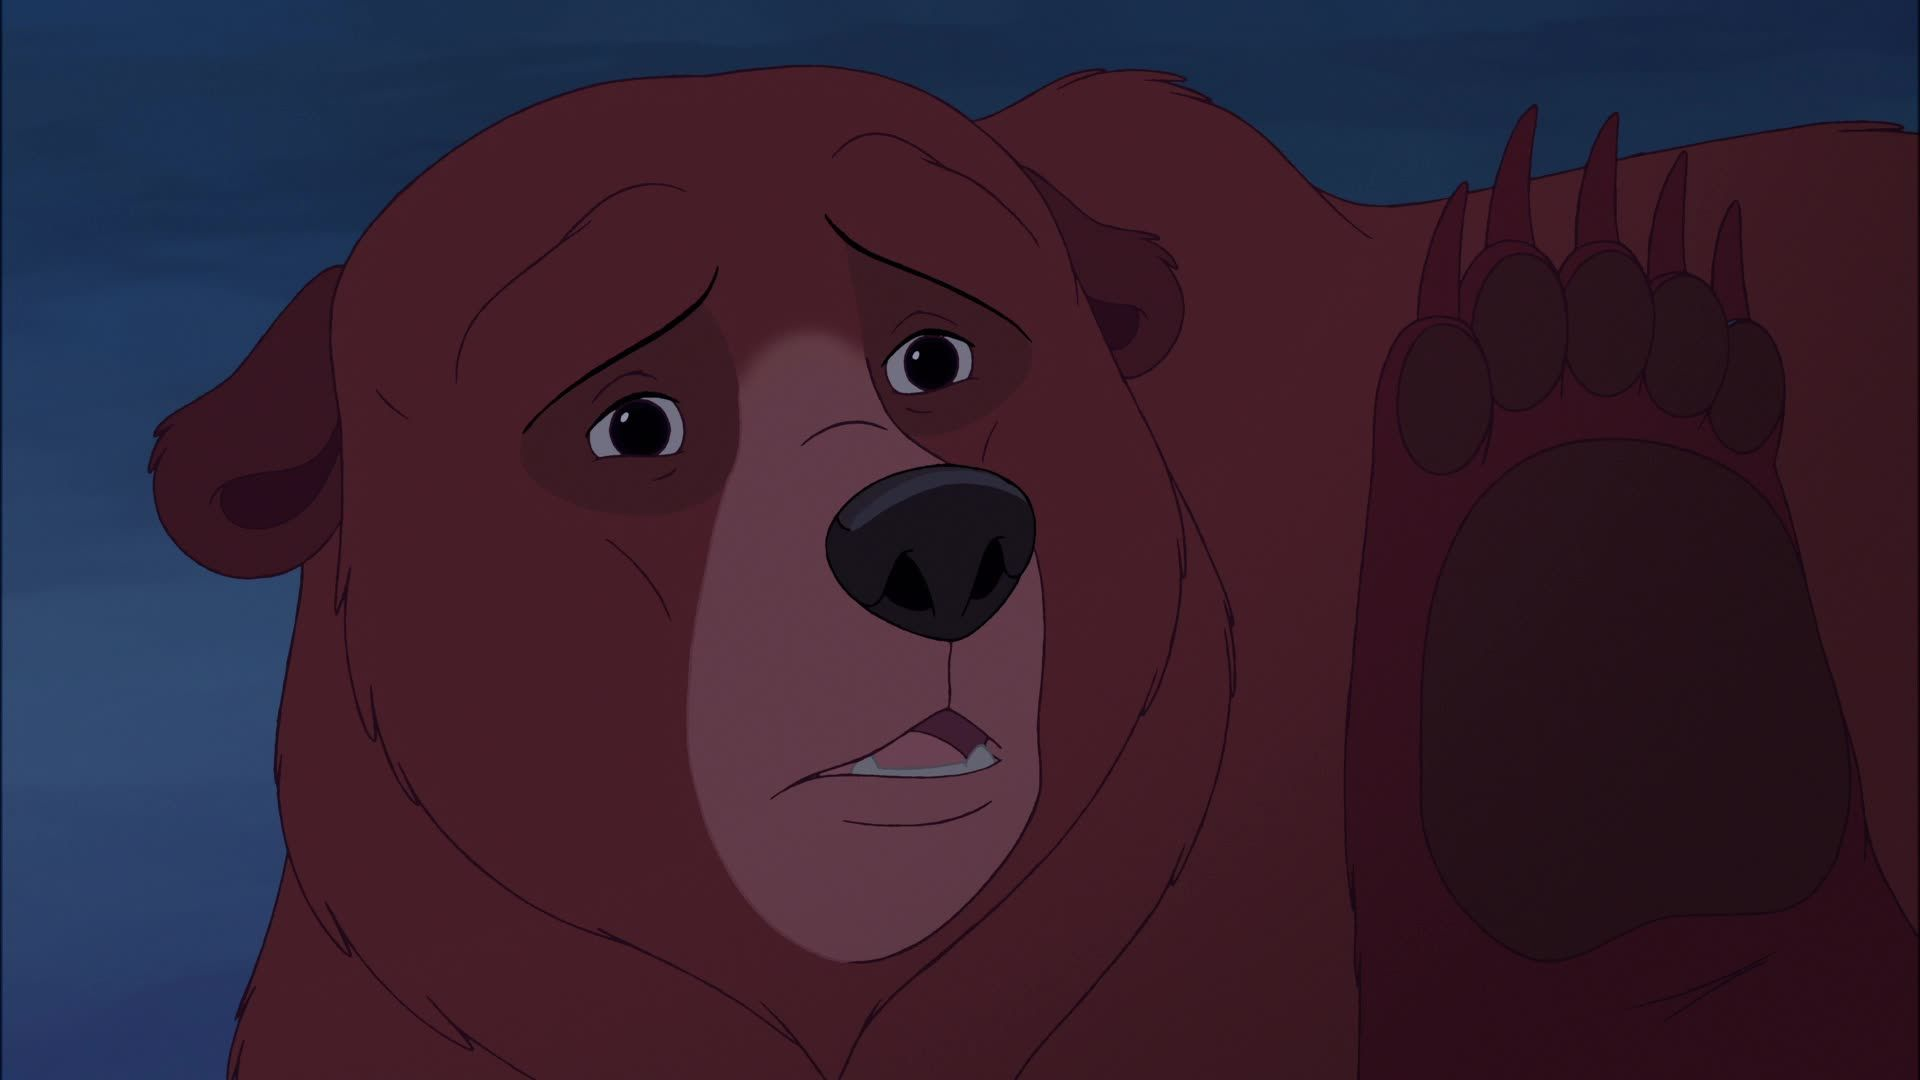 Pin by Korey Blackwell on Brother bear | Pinterest | Brother bear